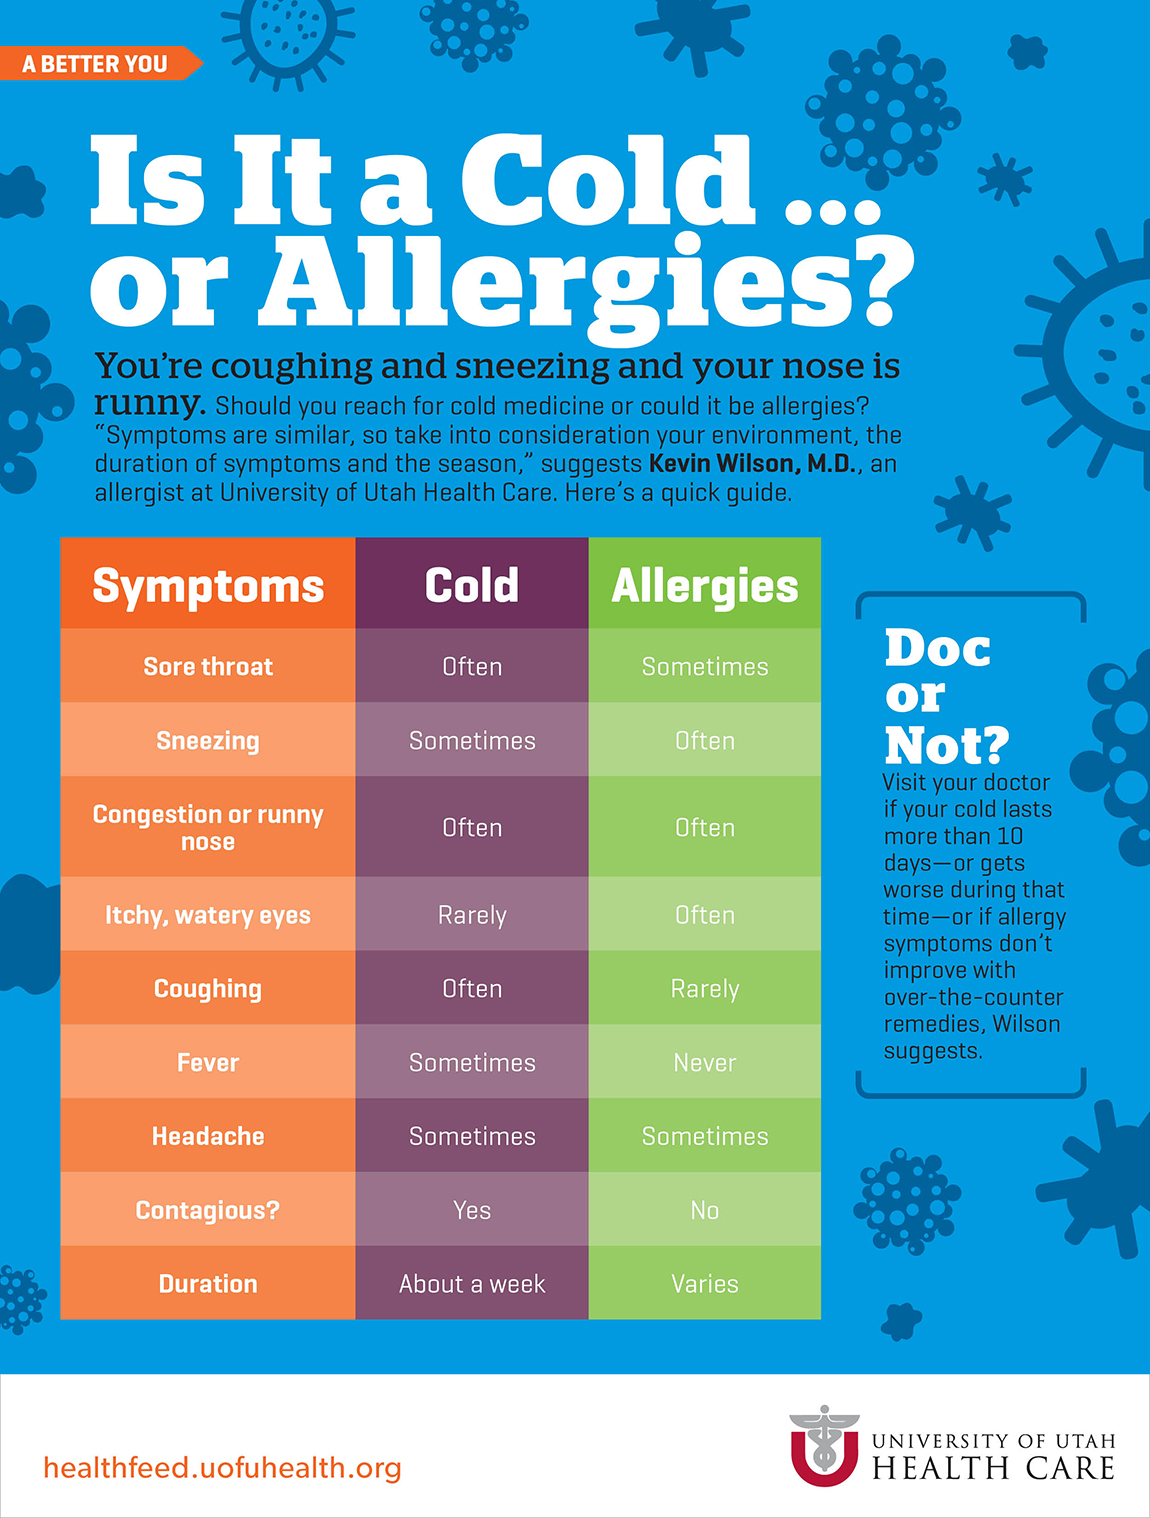 How to distinguish allergies from colds in adults and children 42